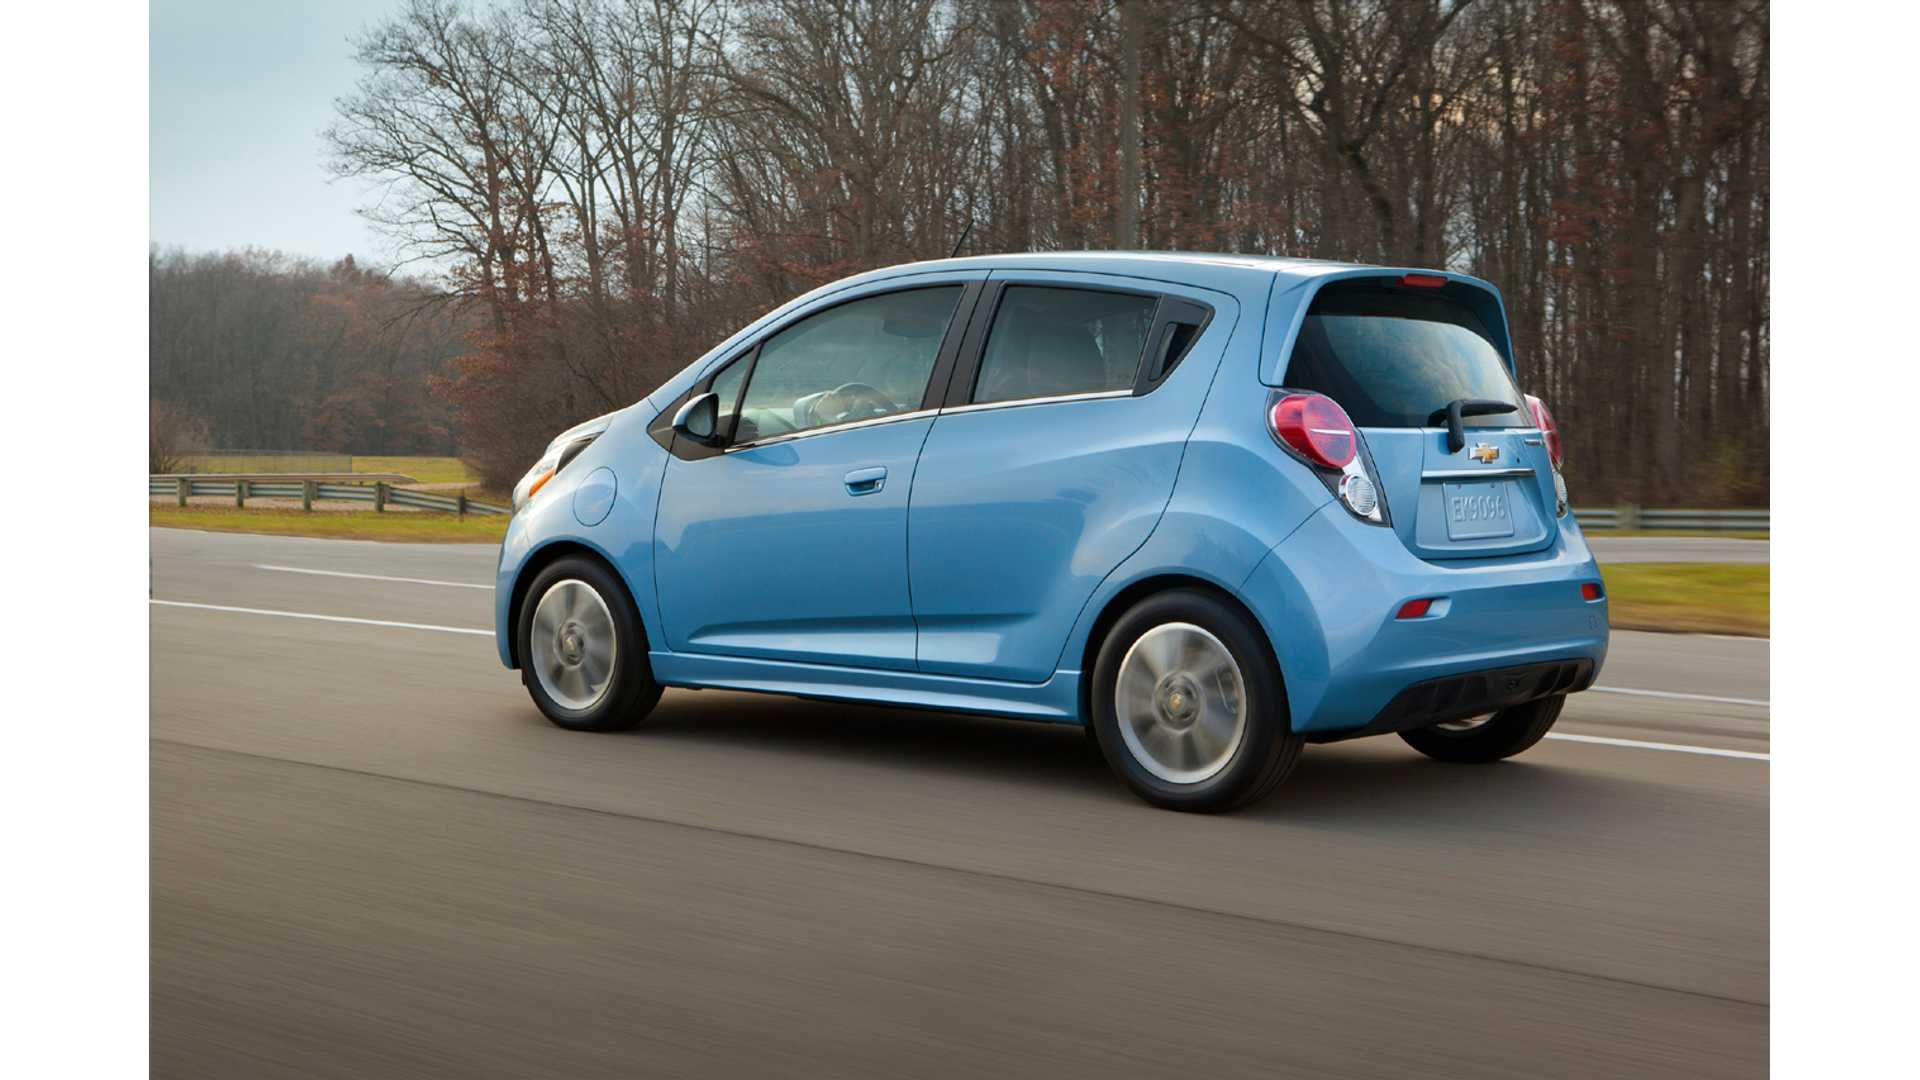 Real-World Test Shows Chevy Spark EV Has Substantially More